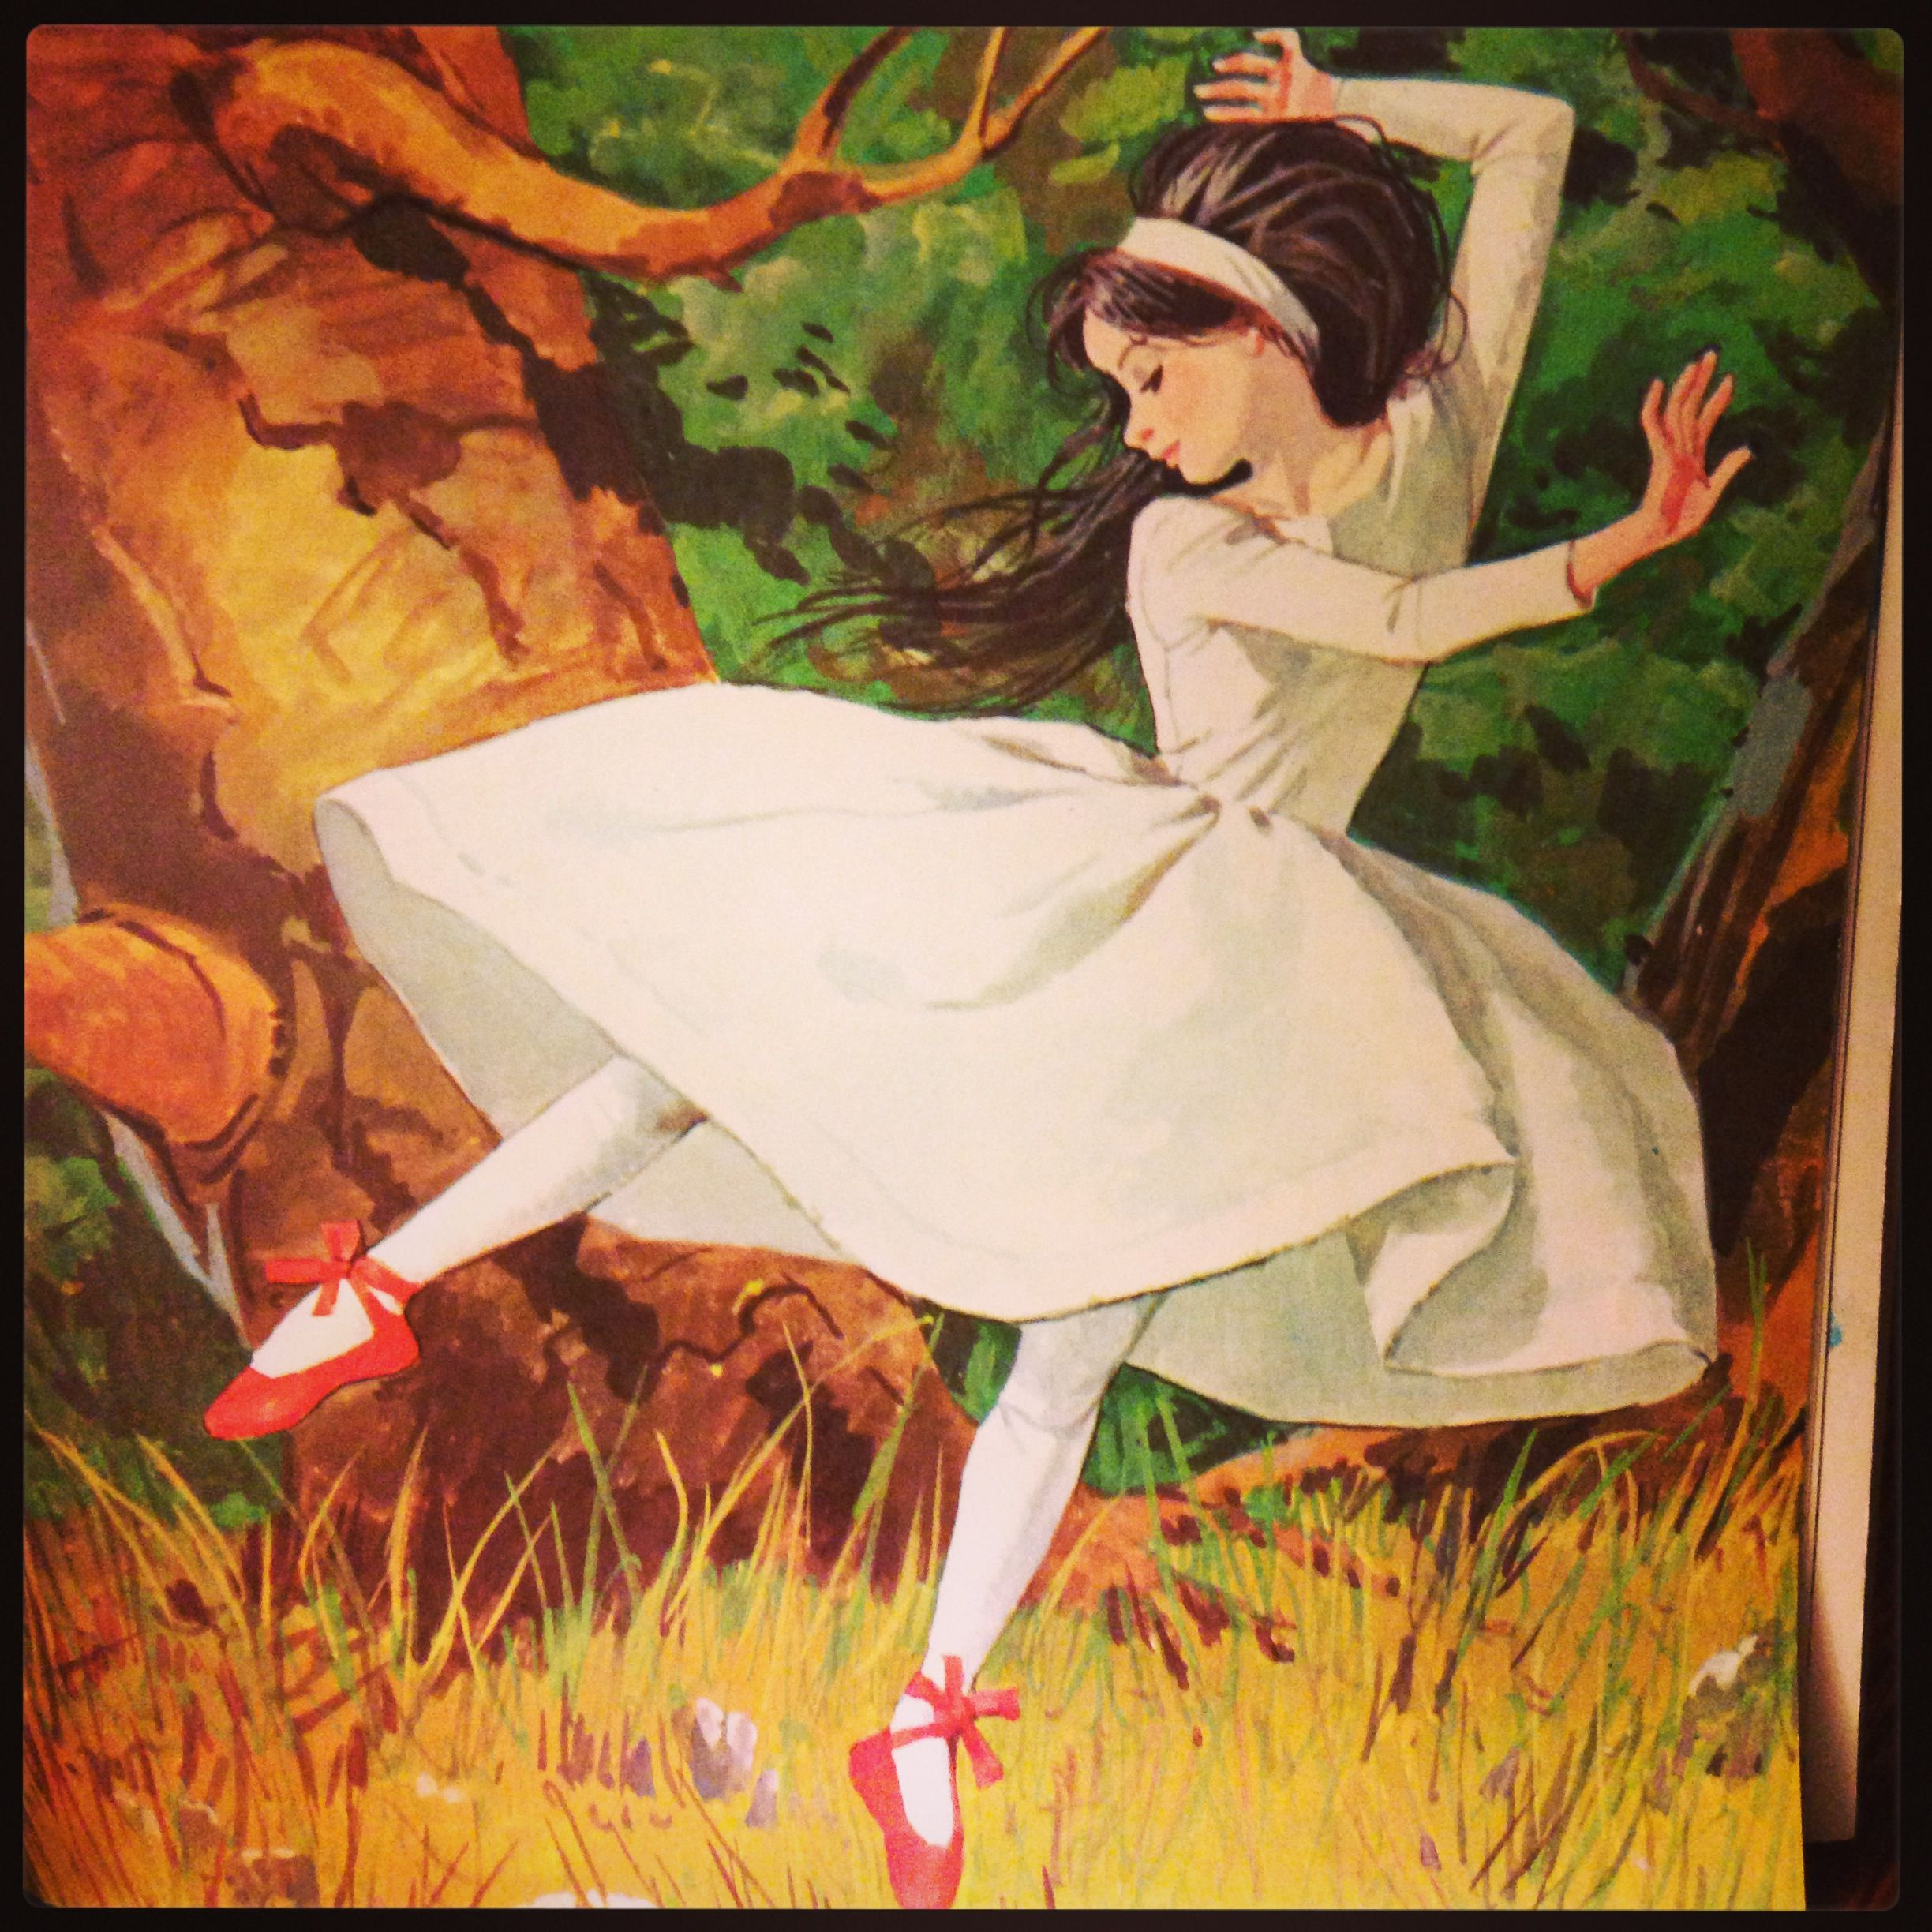 The Red Shoes From Fairy Tales As Retold By Bridget Hadaway This